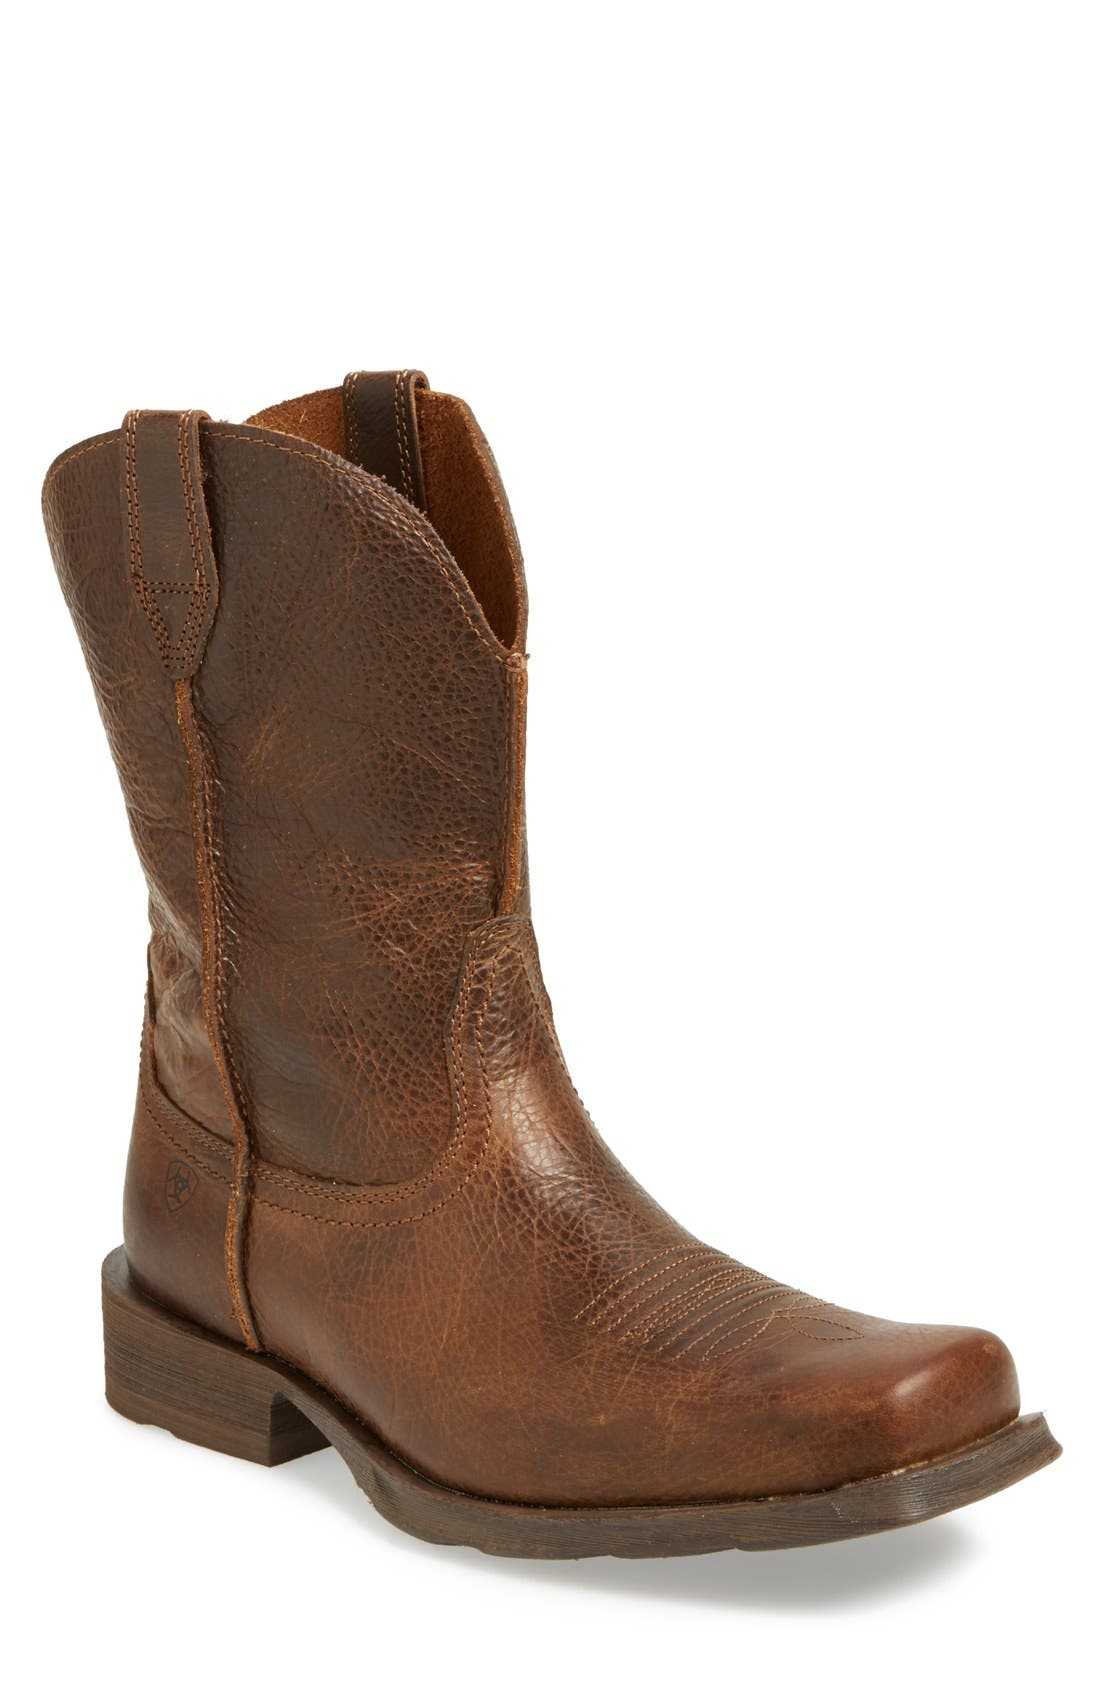 Main Image - Ariat 'Rambler' Square Toe Leather Cowboy Boot (Men)